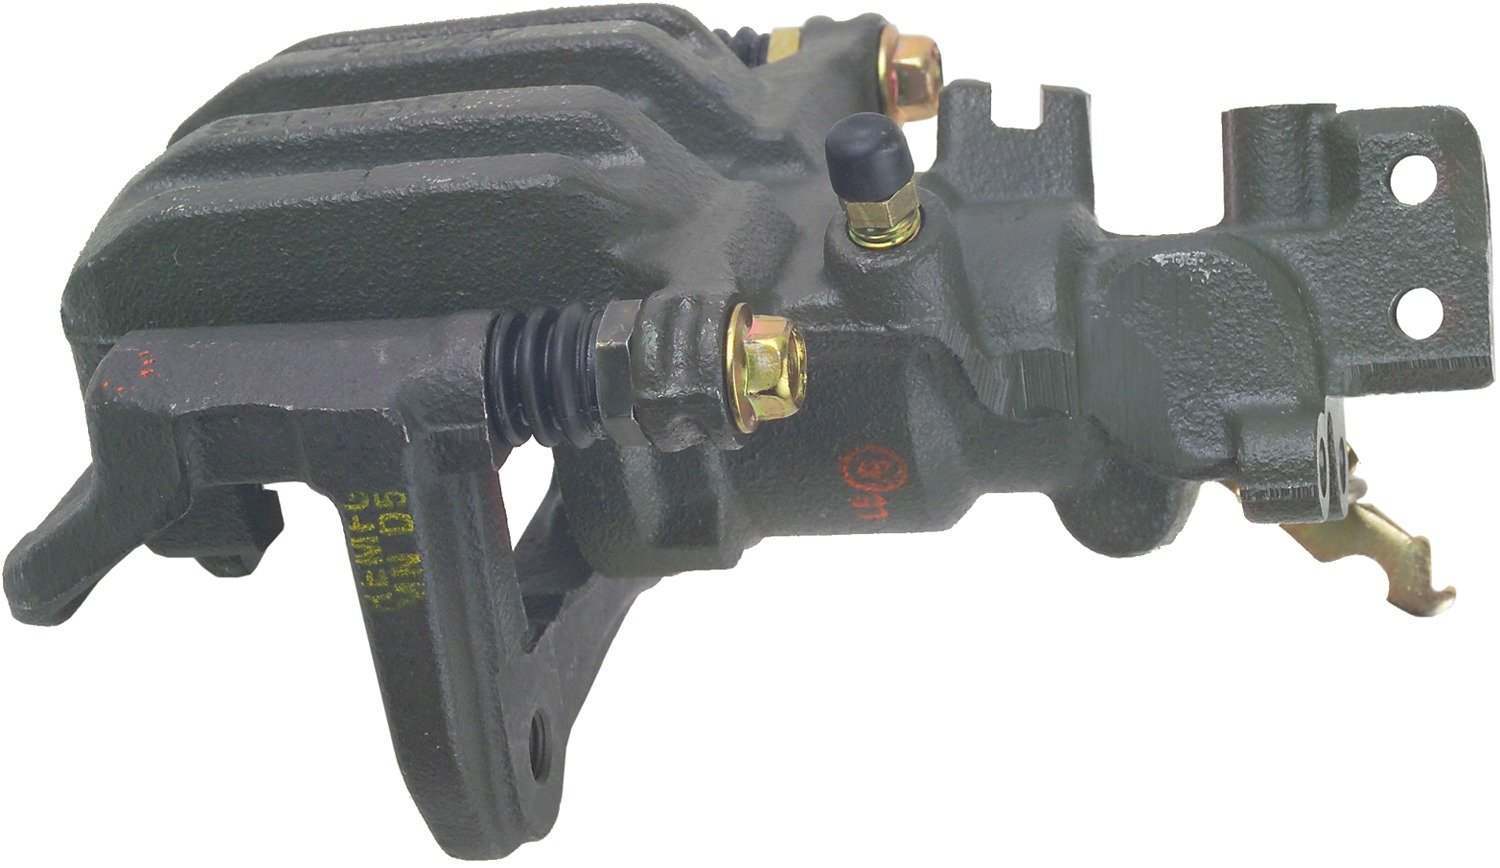 Cardone 19-B2730 Remanufactured Import Friction Ready (Unloaded) Brake Caliper by A1 Cardone (Image #4)